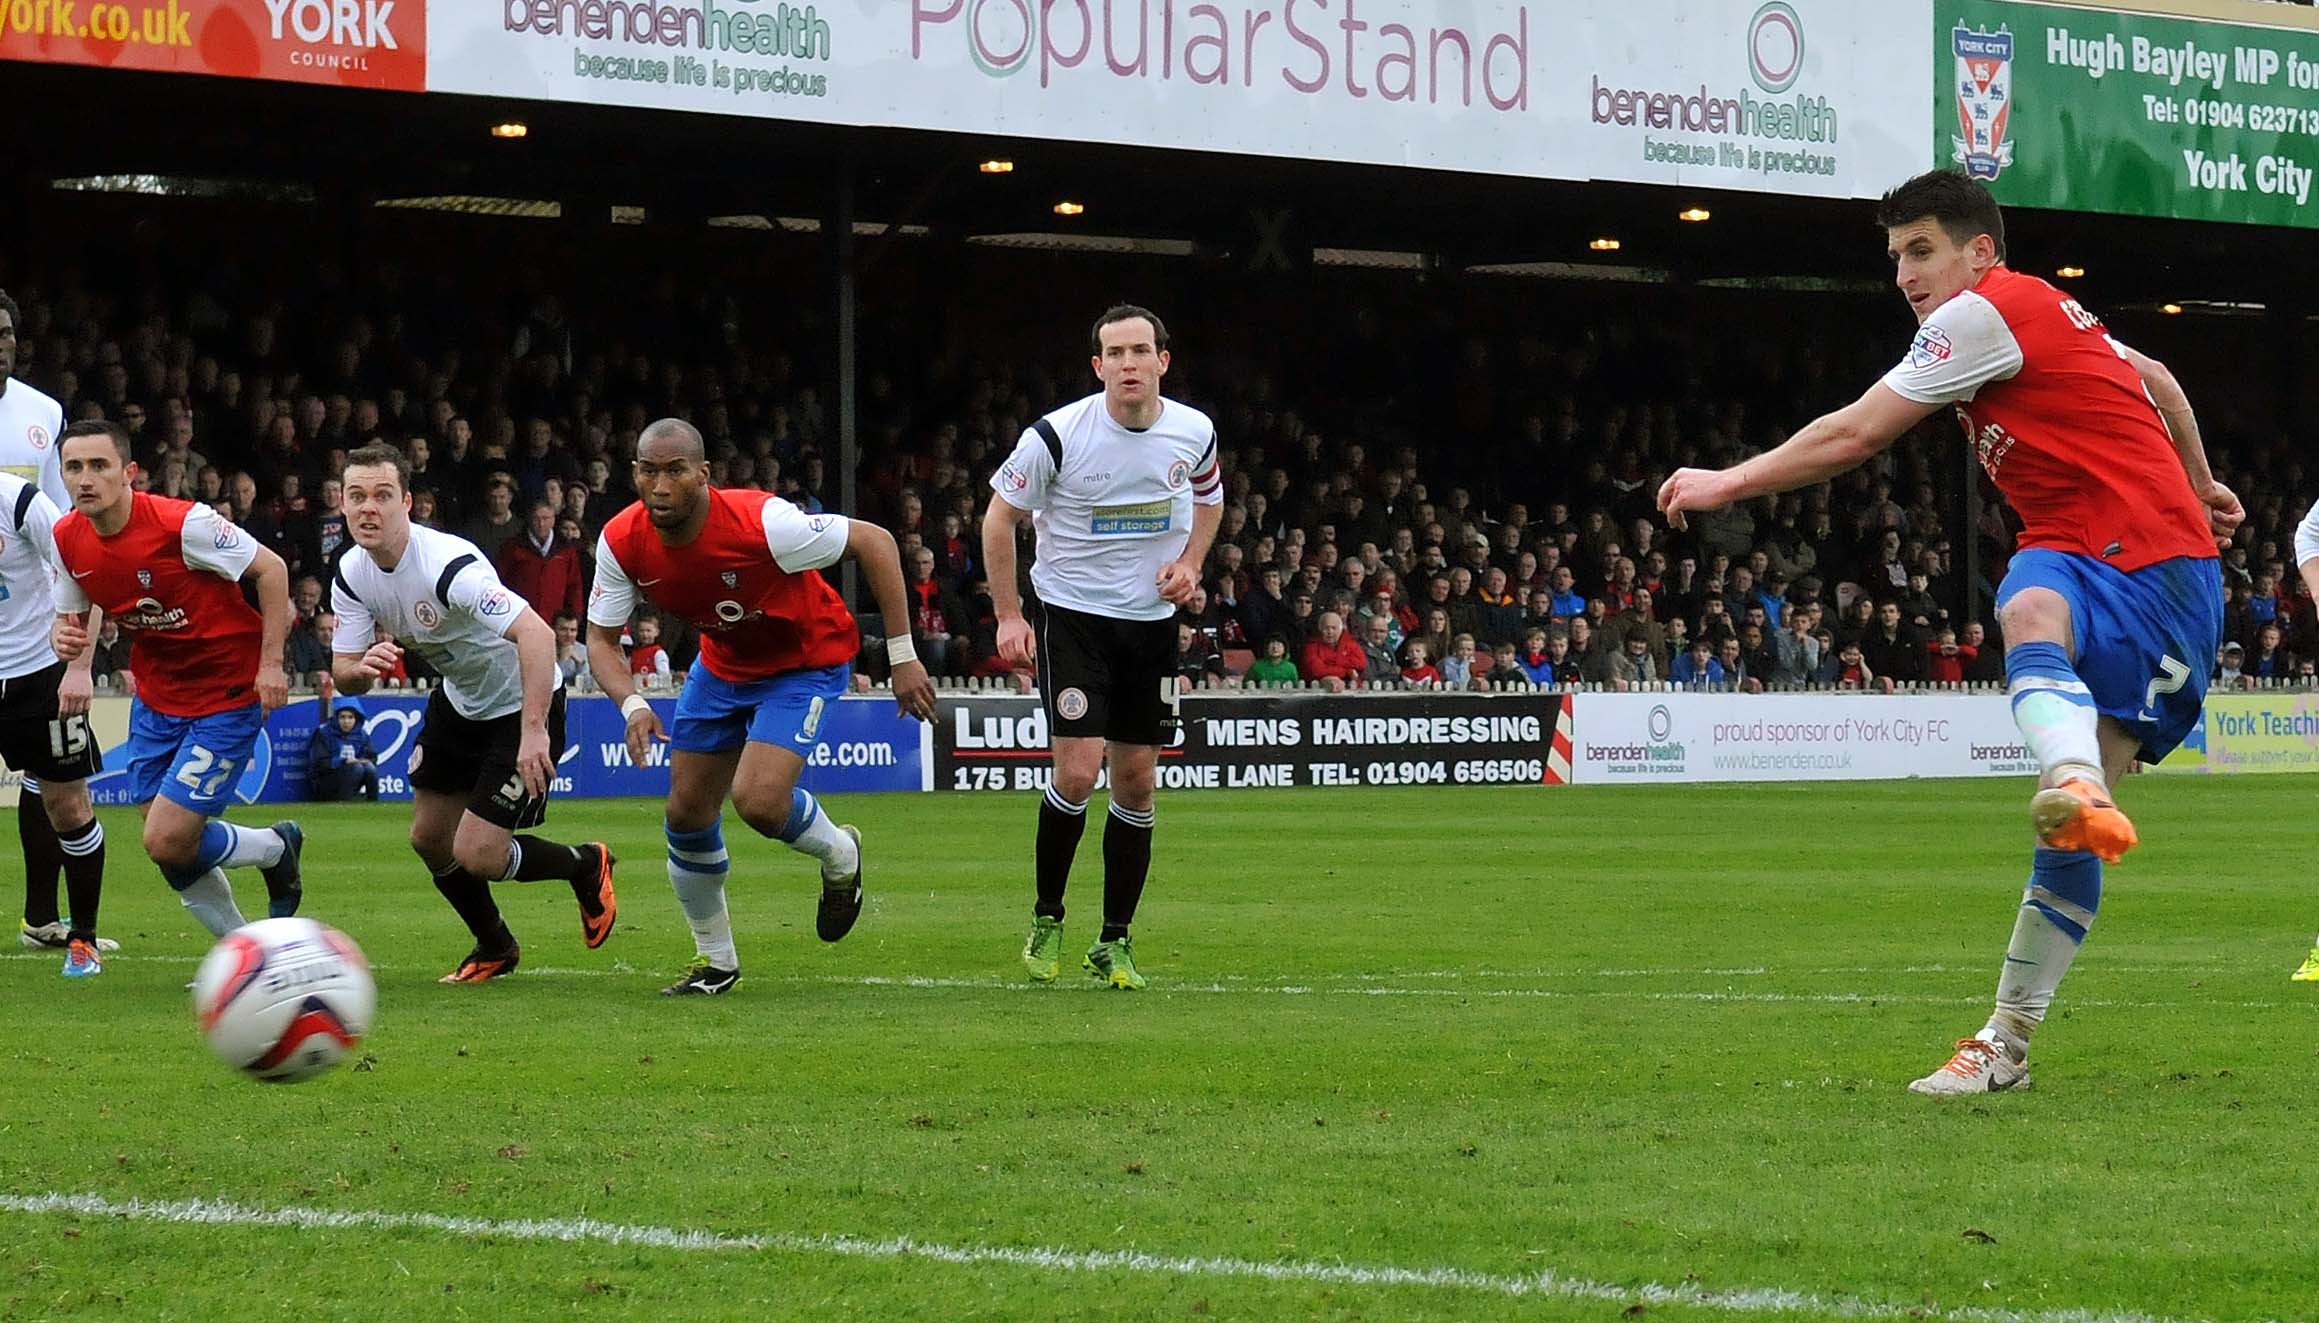 York City 1, Accrington Stanley 1